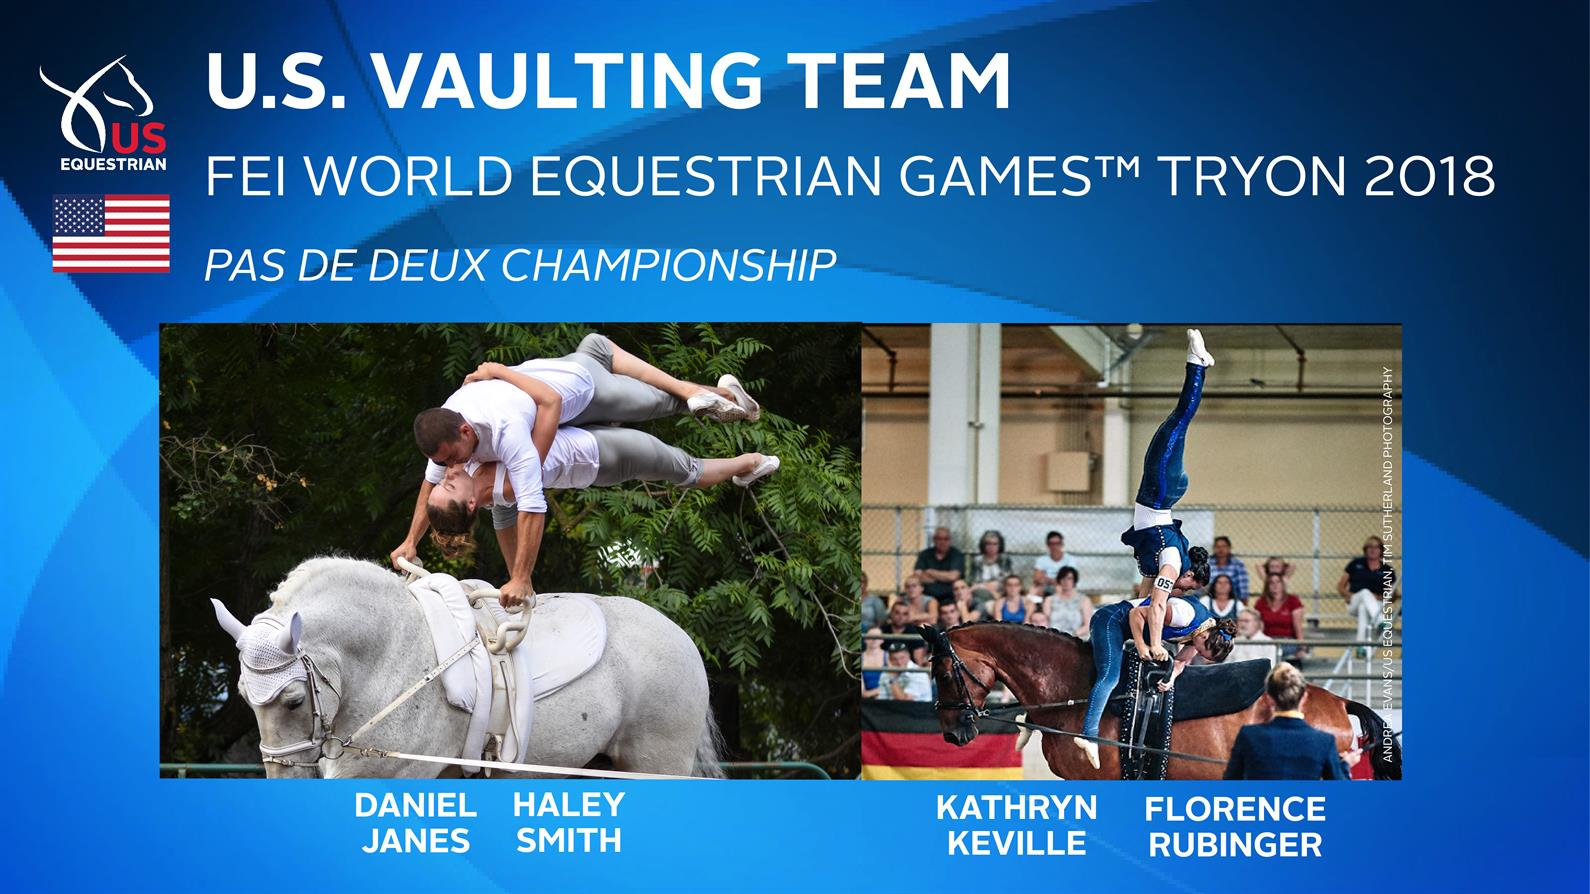 Us Equestrian Names U S Vaulting Team For Fei World